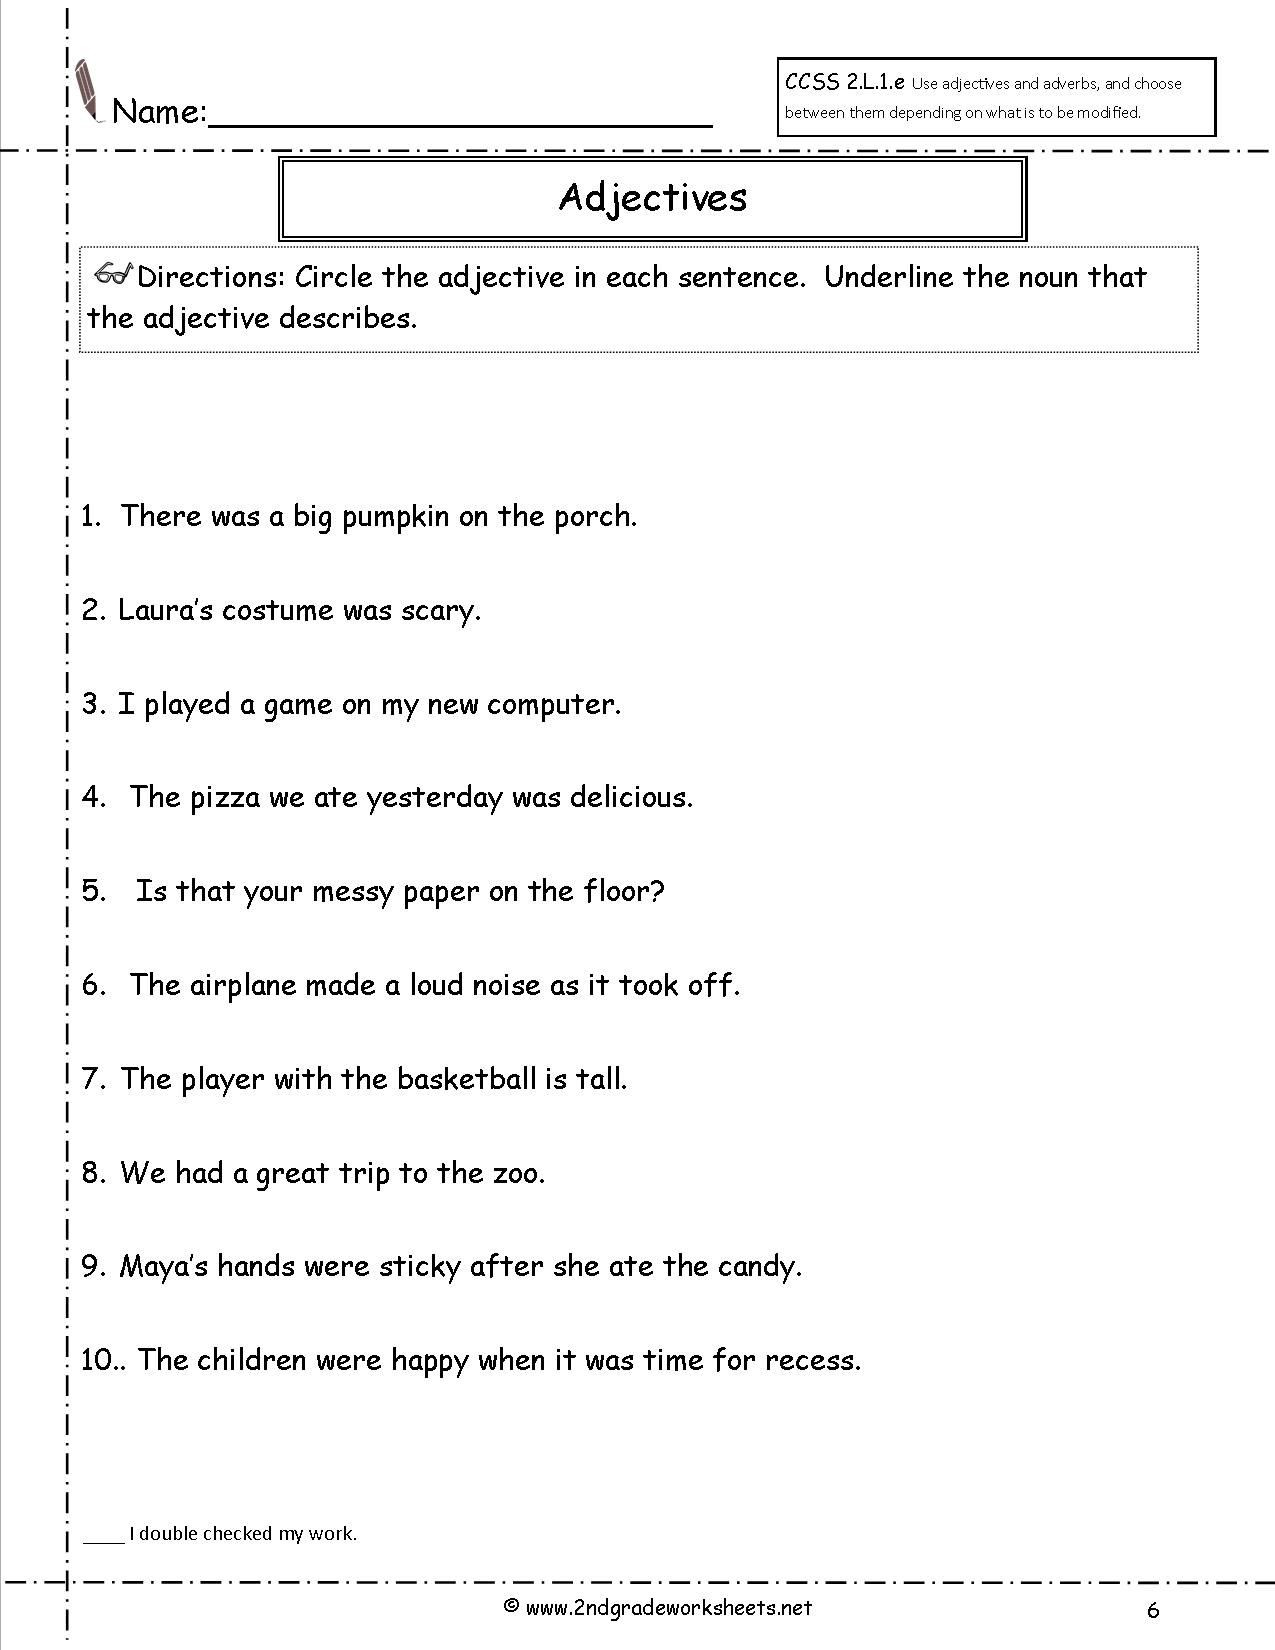 Adjectives Worksheets for Grade 2 Adjectives Worksheet for First Grade